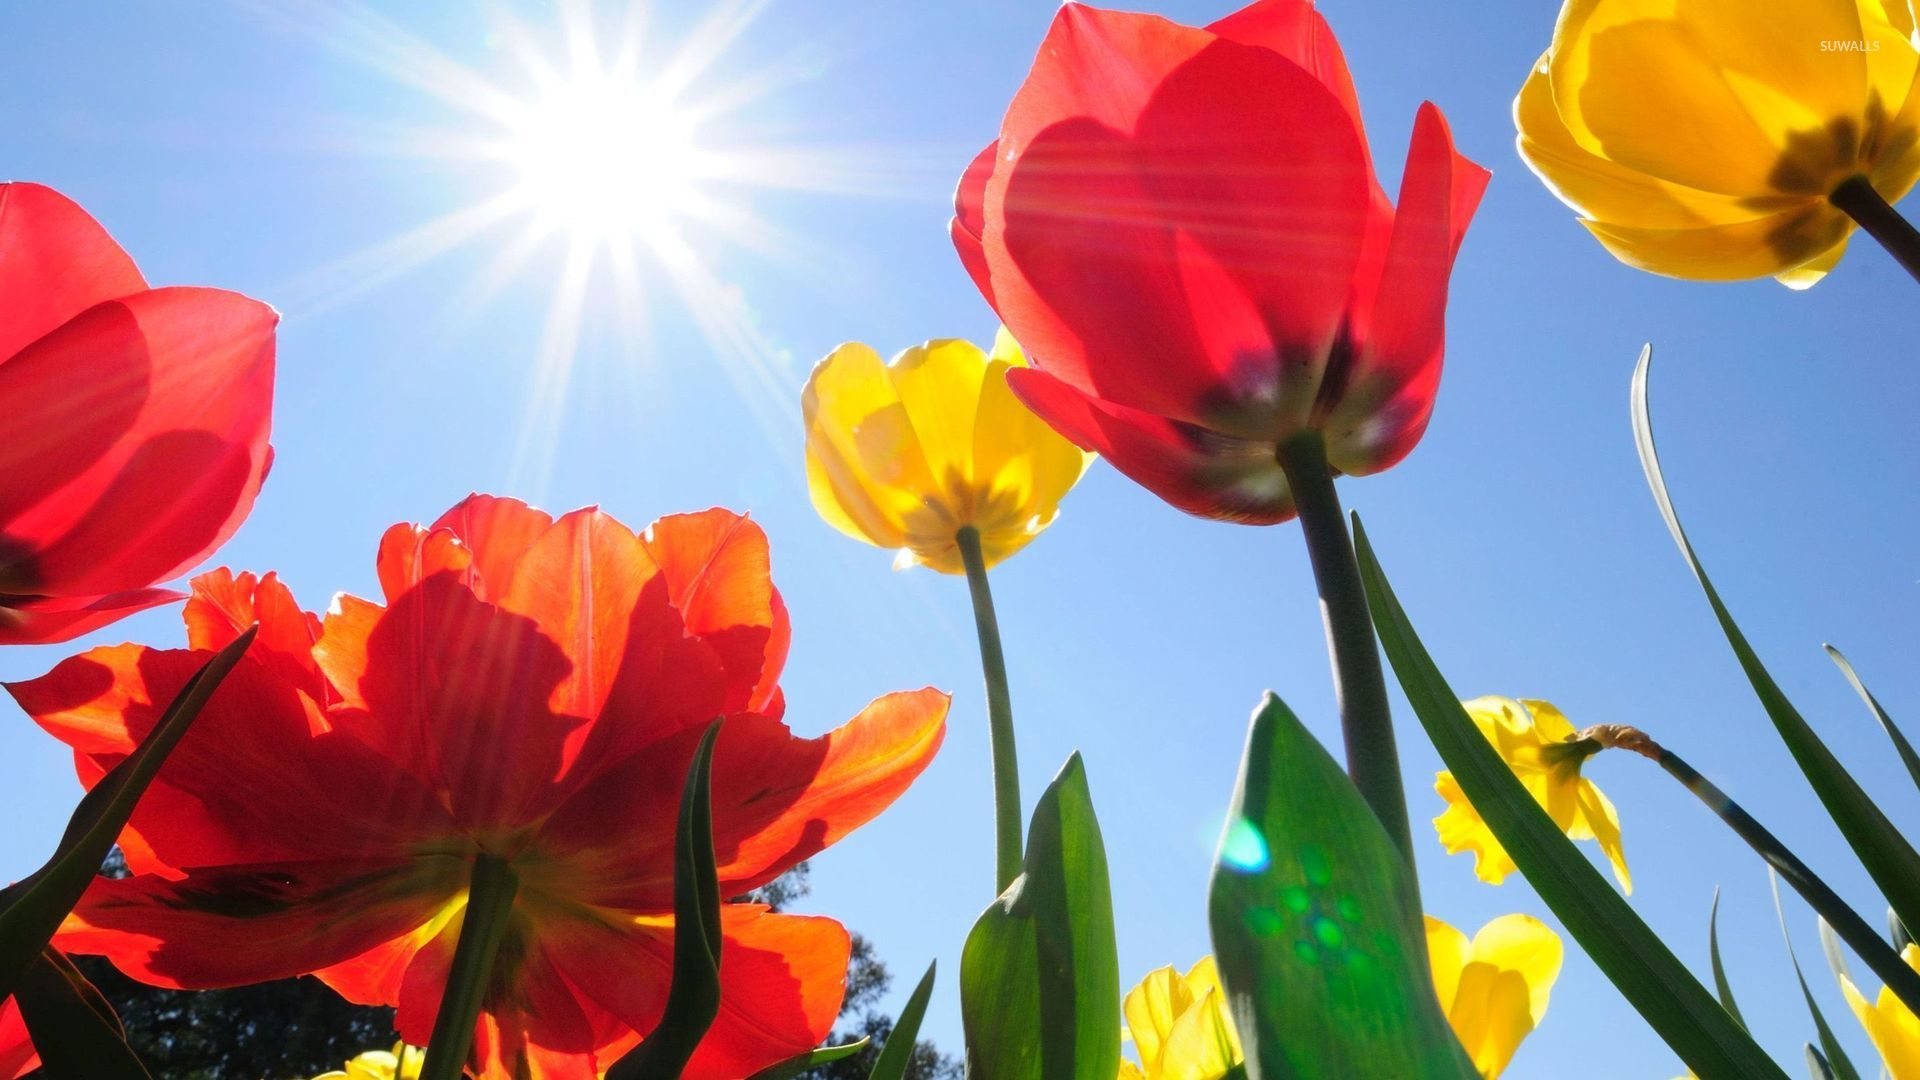 Yellow and red tulips rising to the sun wallpaper - Flower ...